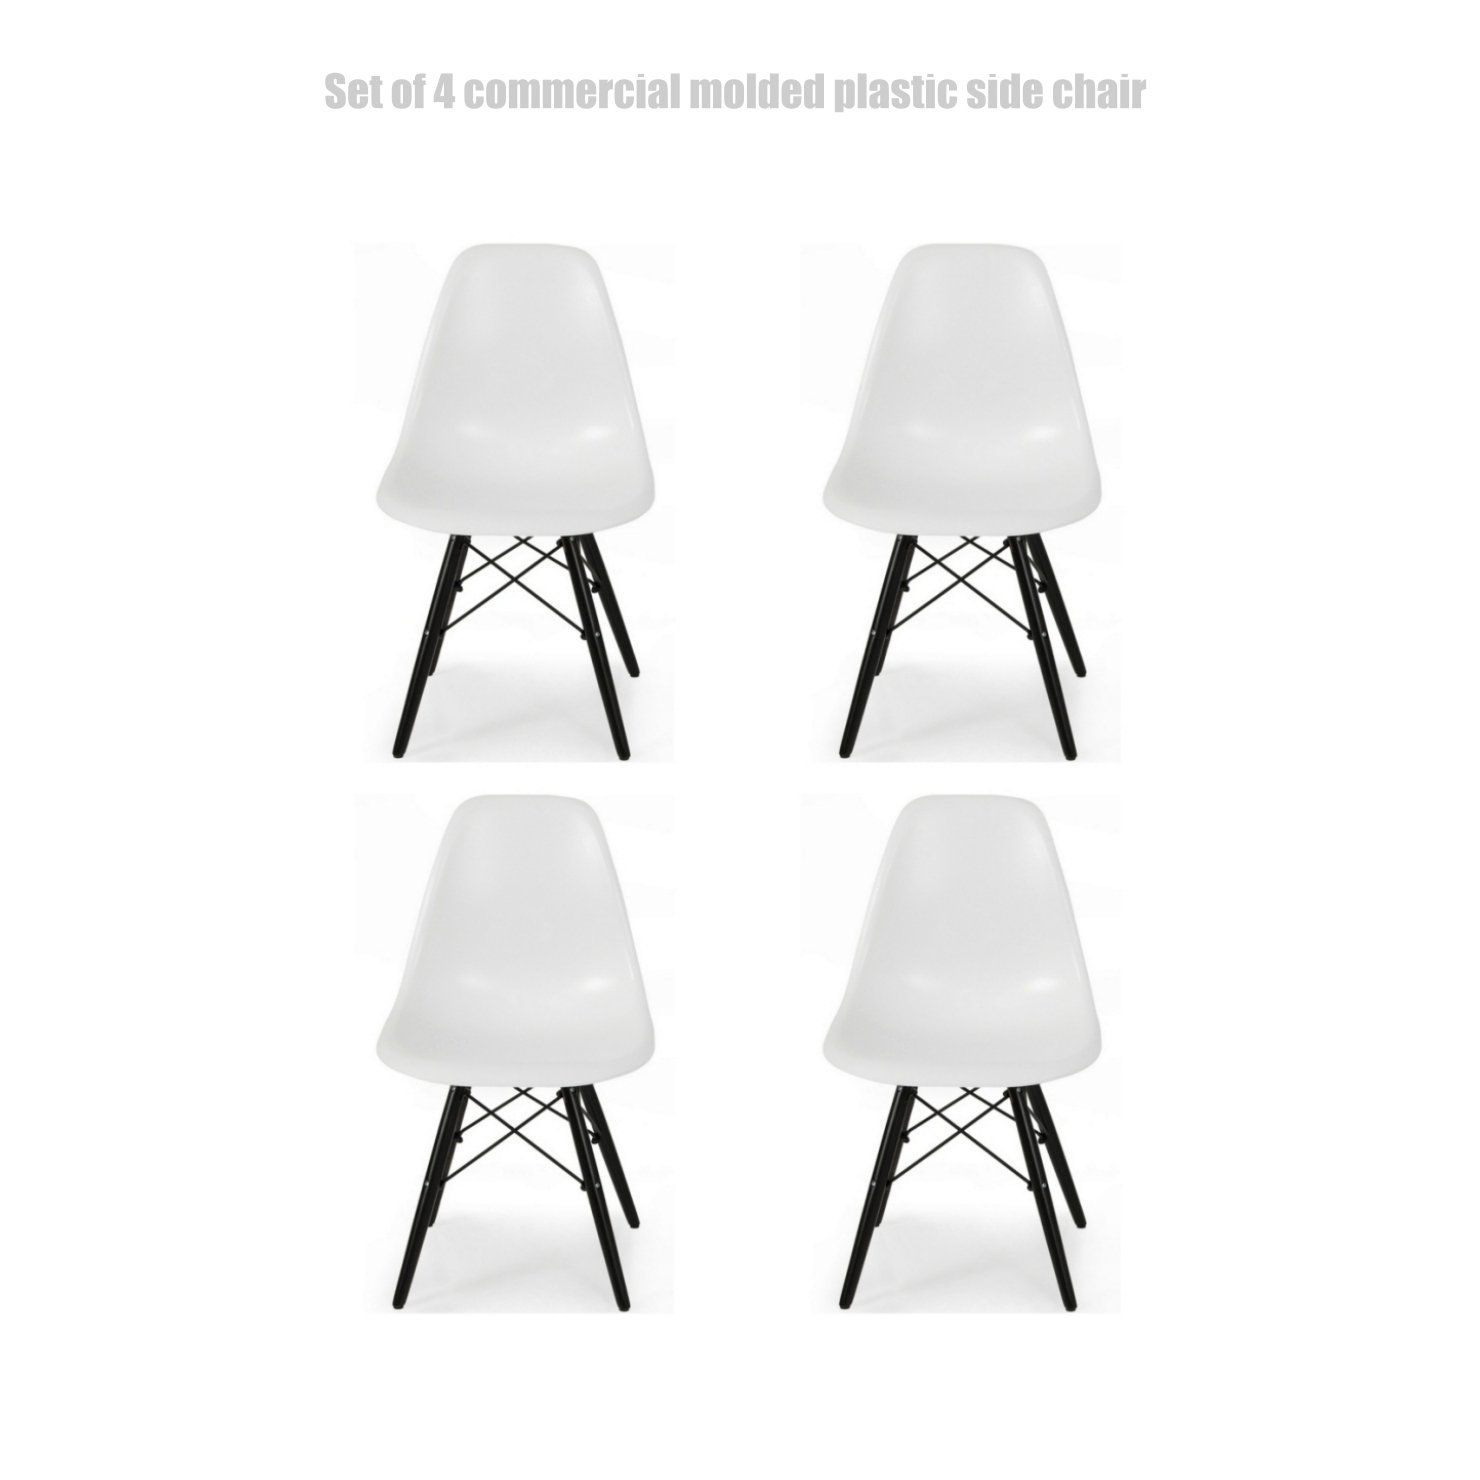 Classic Vintage Style Dining Chair Molded Plastic Flexible Backs Support Deep Seat Pockets Straight Wooden Dowel Legs Innovative Side Chair - Set of 4 White/Black Wood Base #1444z